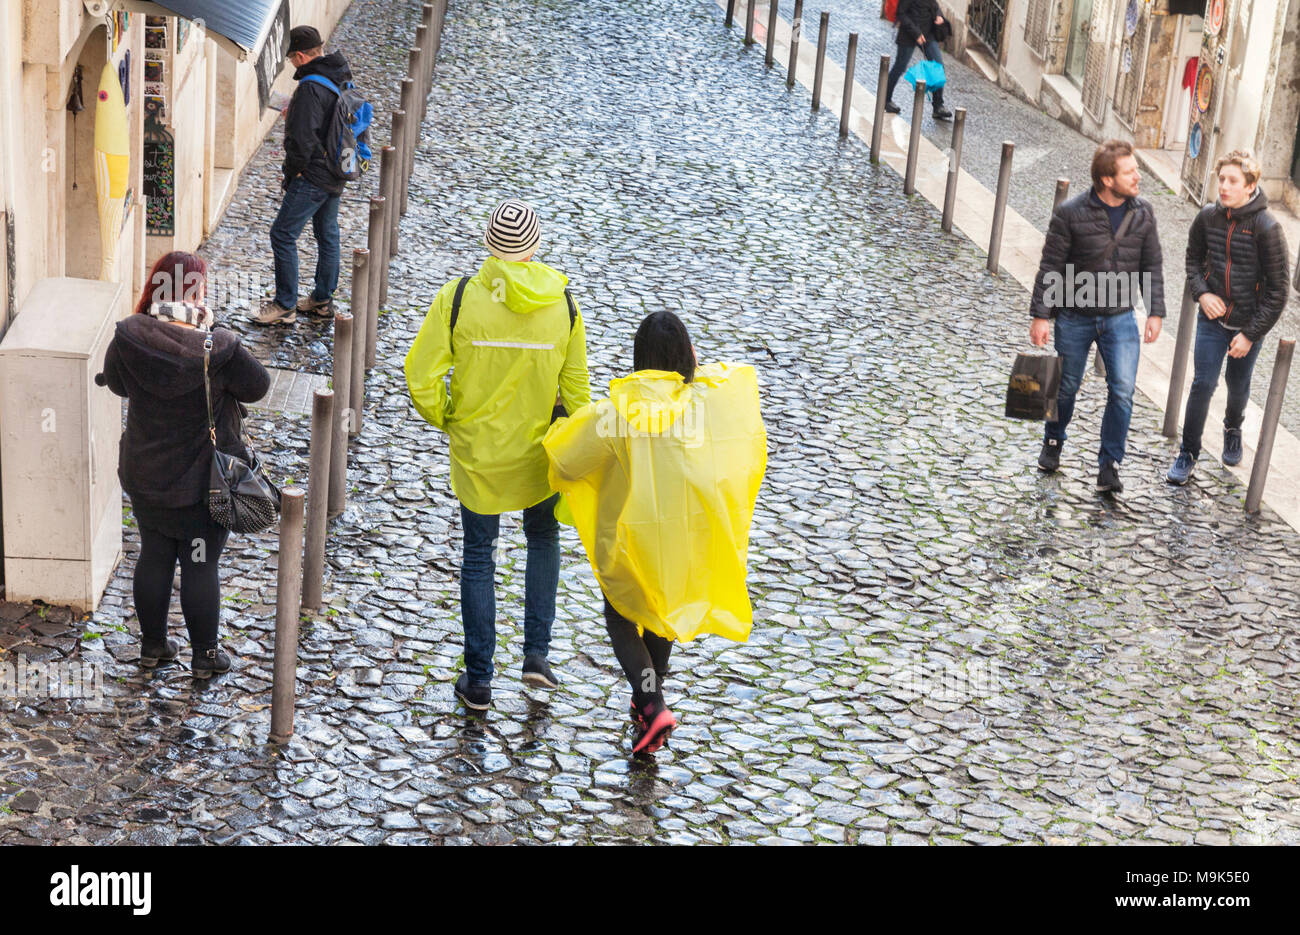 1 March 2018: Lisbon Portugal - Couple wearing yellow plastic rain capes in the old town of Lisbon on a wet day. - Stock Image